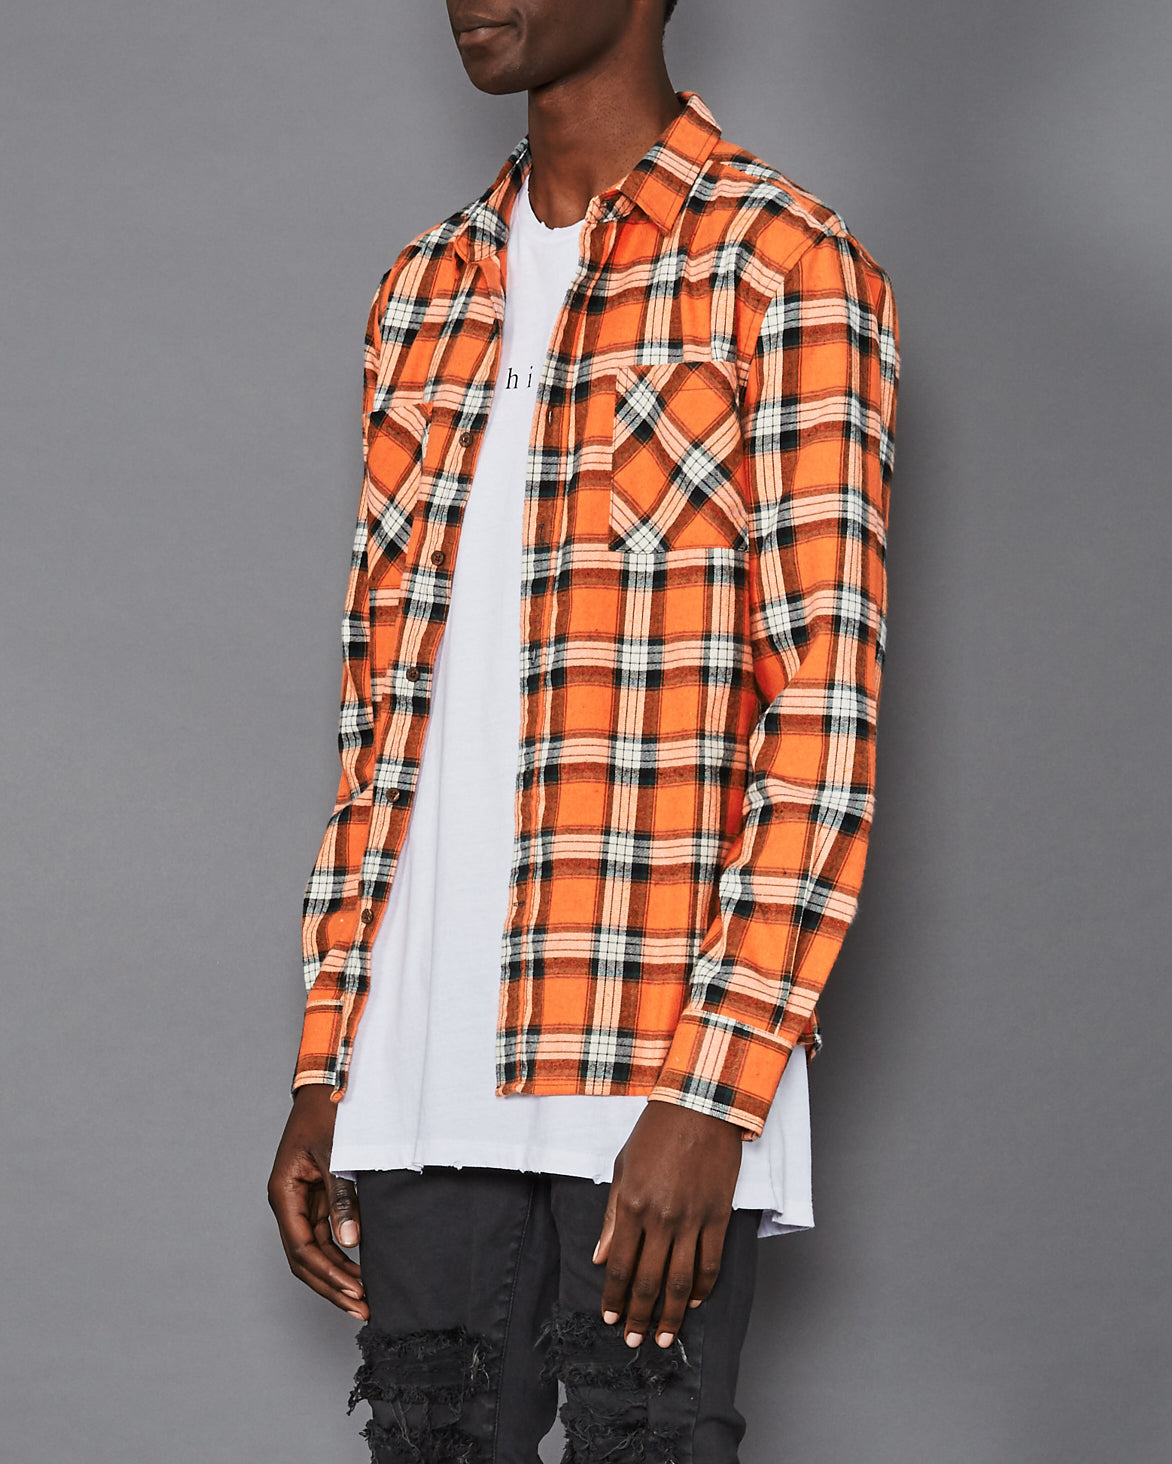 Skid Row Long Sleeve Casual Shirt Orange Check